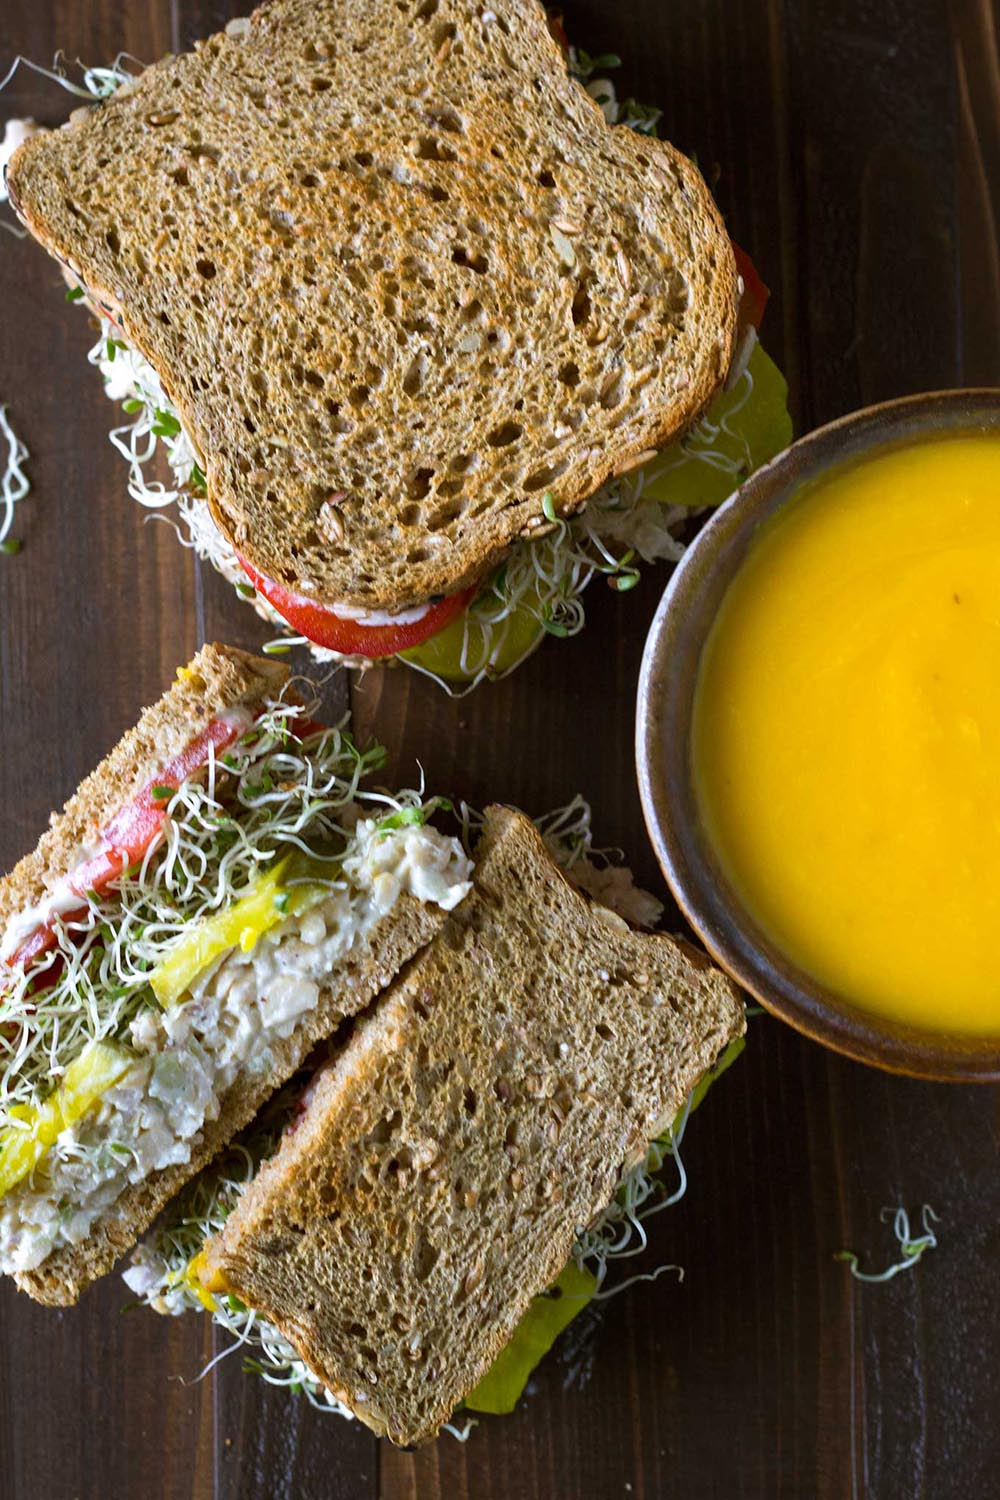 This tasty looking Chickpea Salad Sandwich from Pass the Plants is just one of many healthy, vegan lunch ideas - that both kids and adults will love!